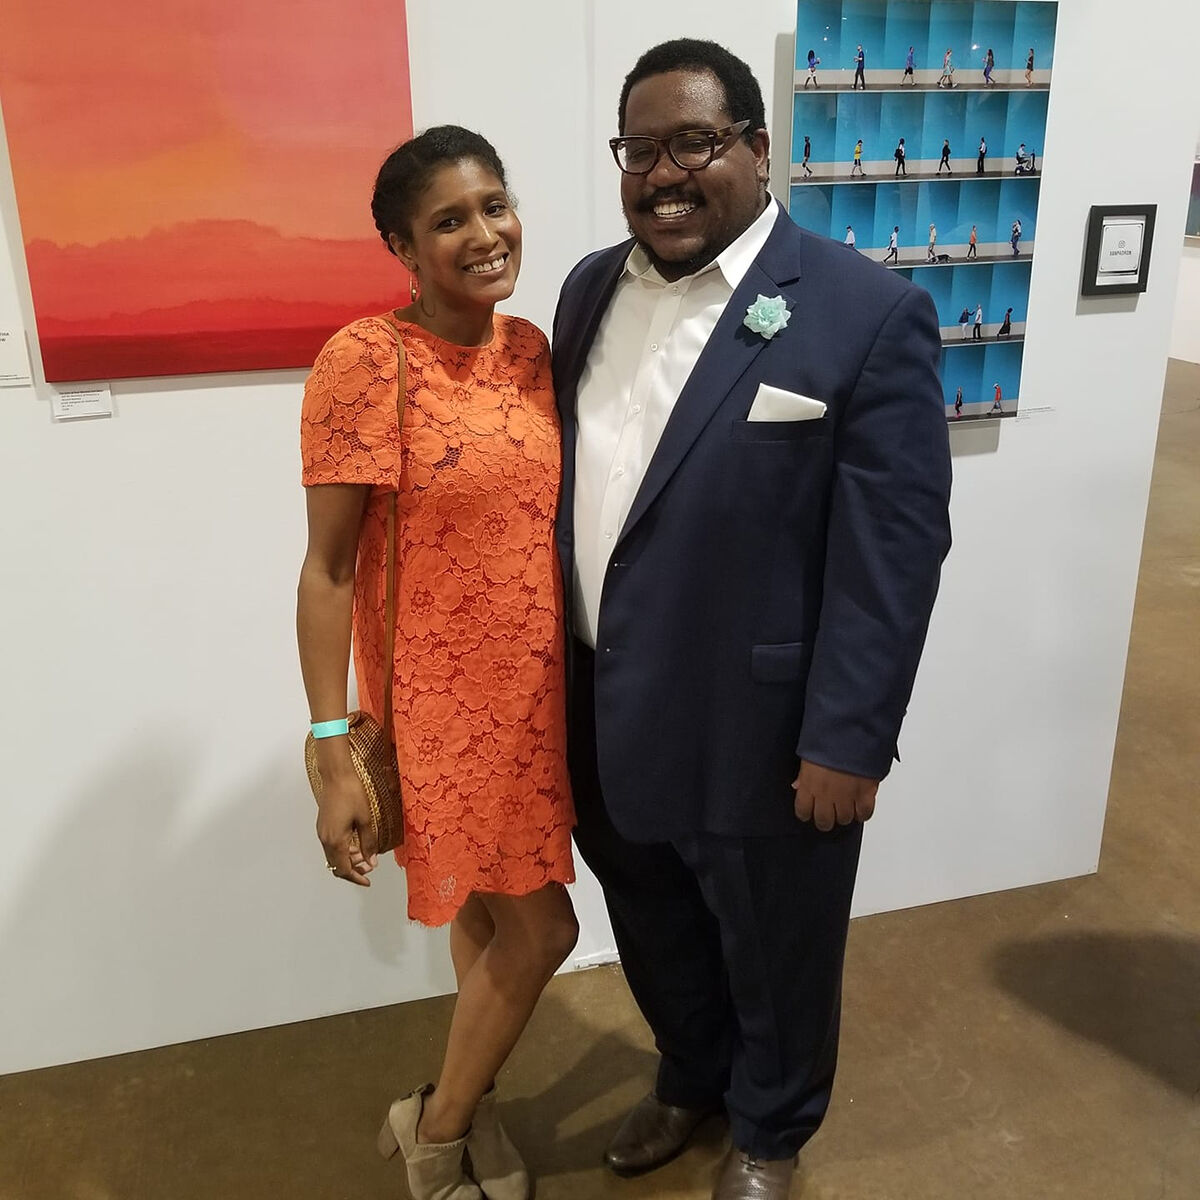 Portrait of Maya Crawford and Darryl Ratcliff at The Other Art Fair, Dallas, 2019. Courtesy of Gossypion Investments.